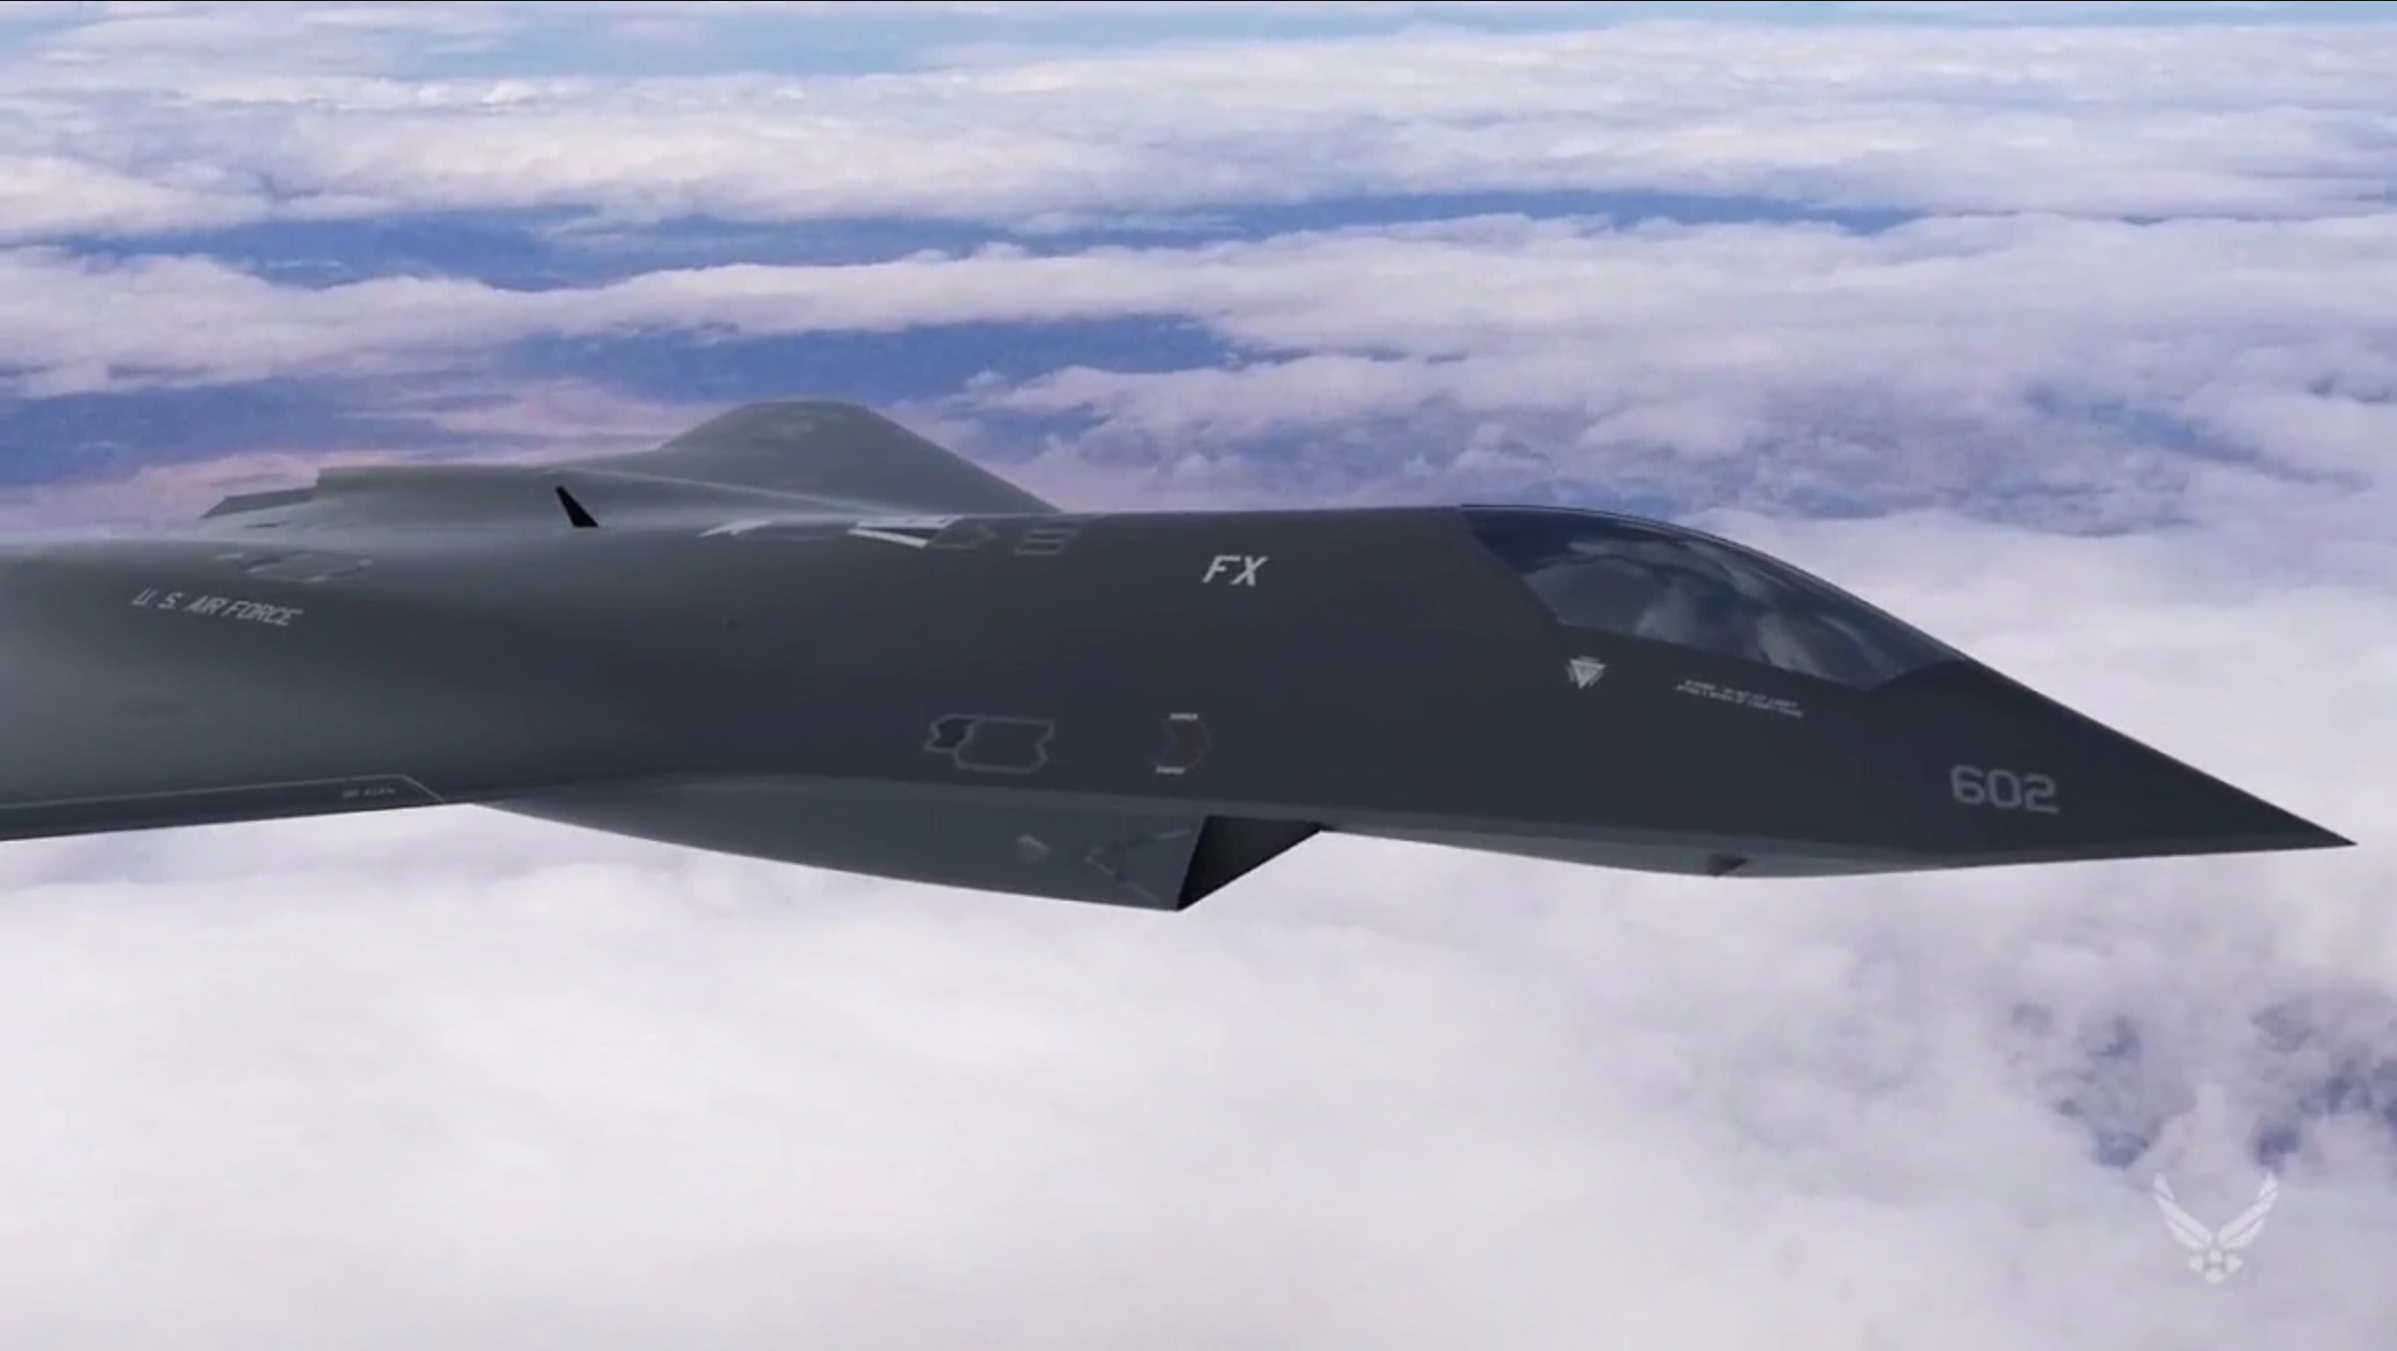 The Air Force Secretly Designed, Built, and Flew a Brand-New Fighter Jet